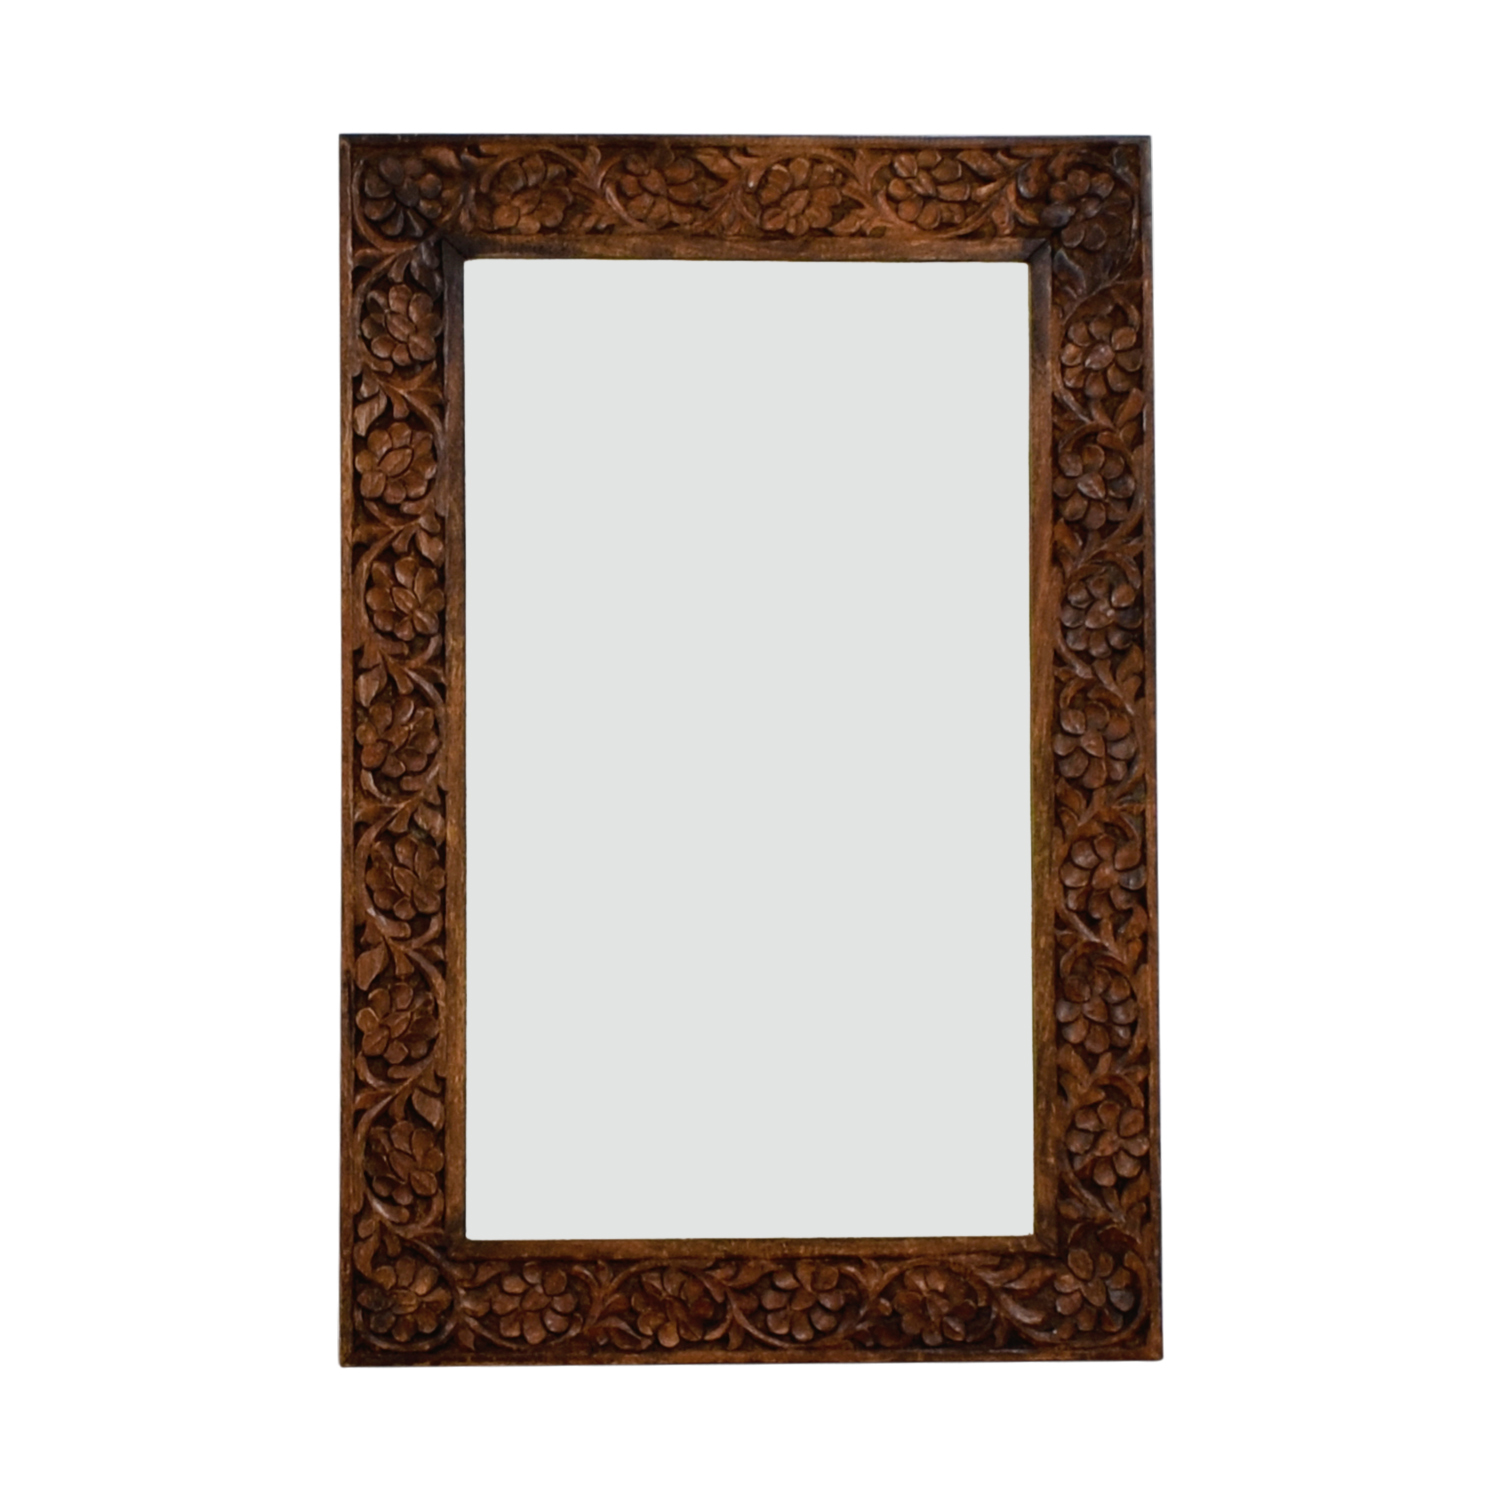 Floral Carved Wooden Mirror